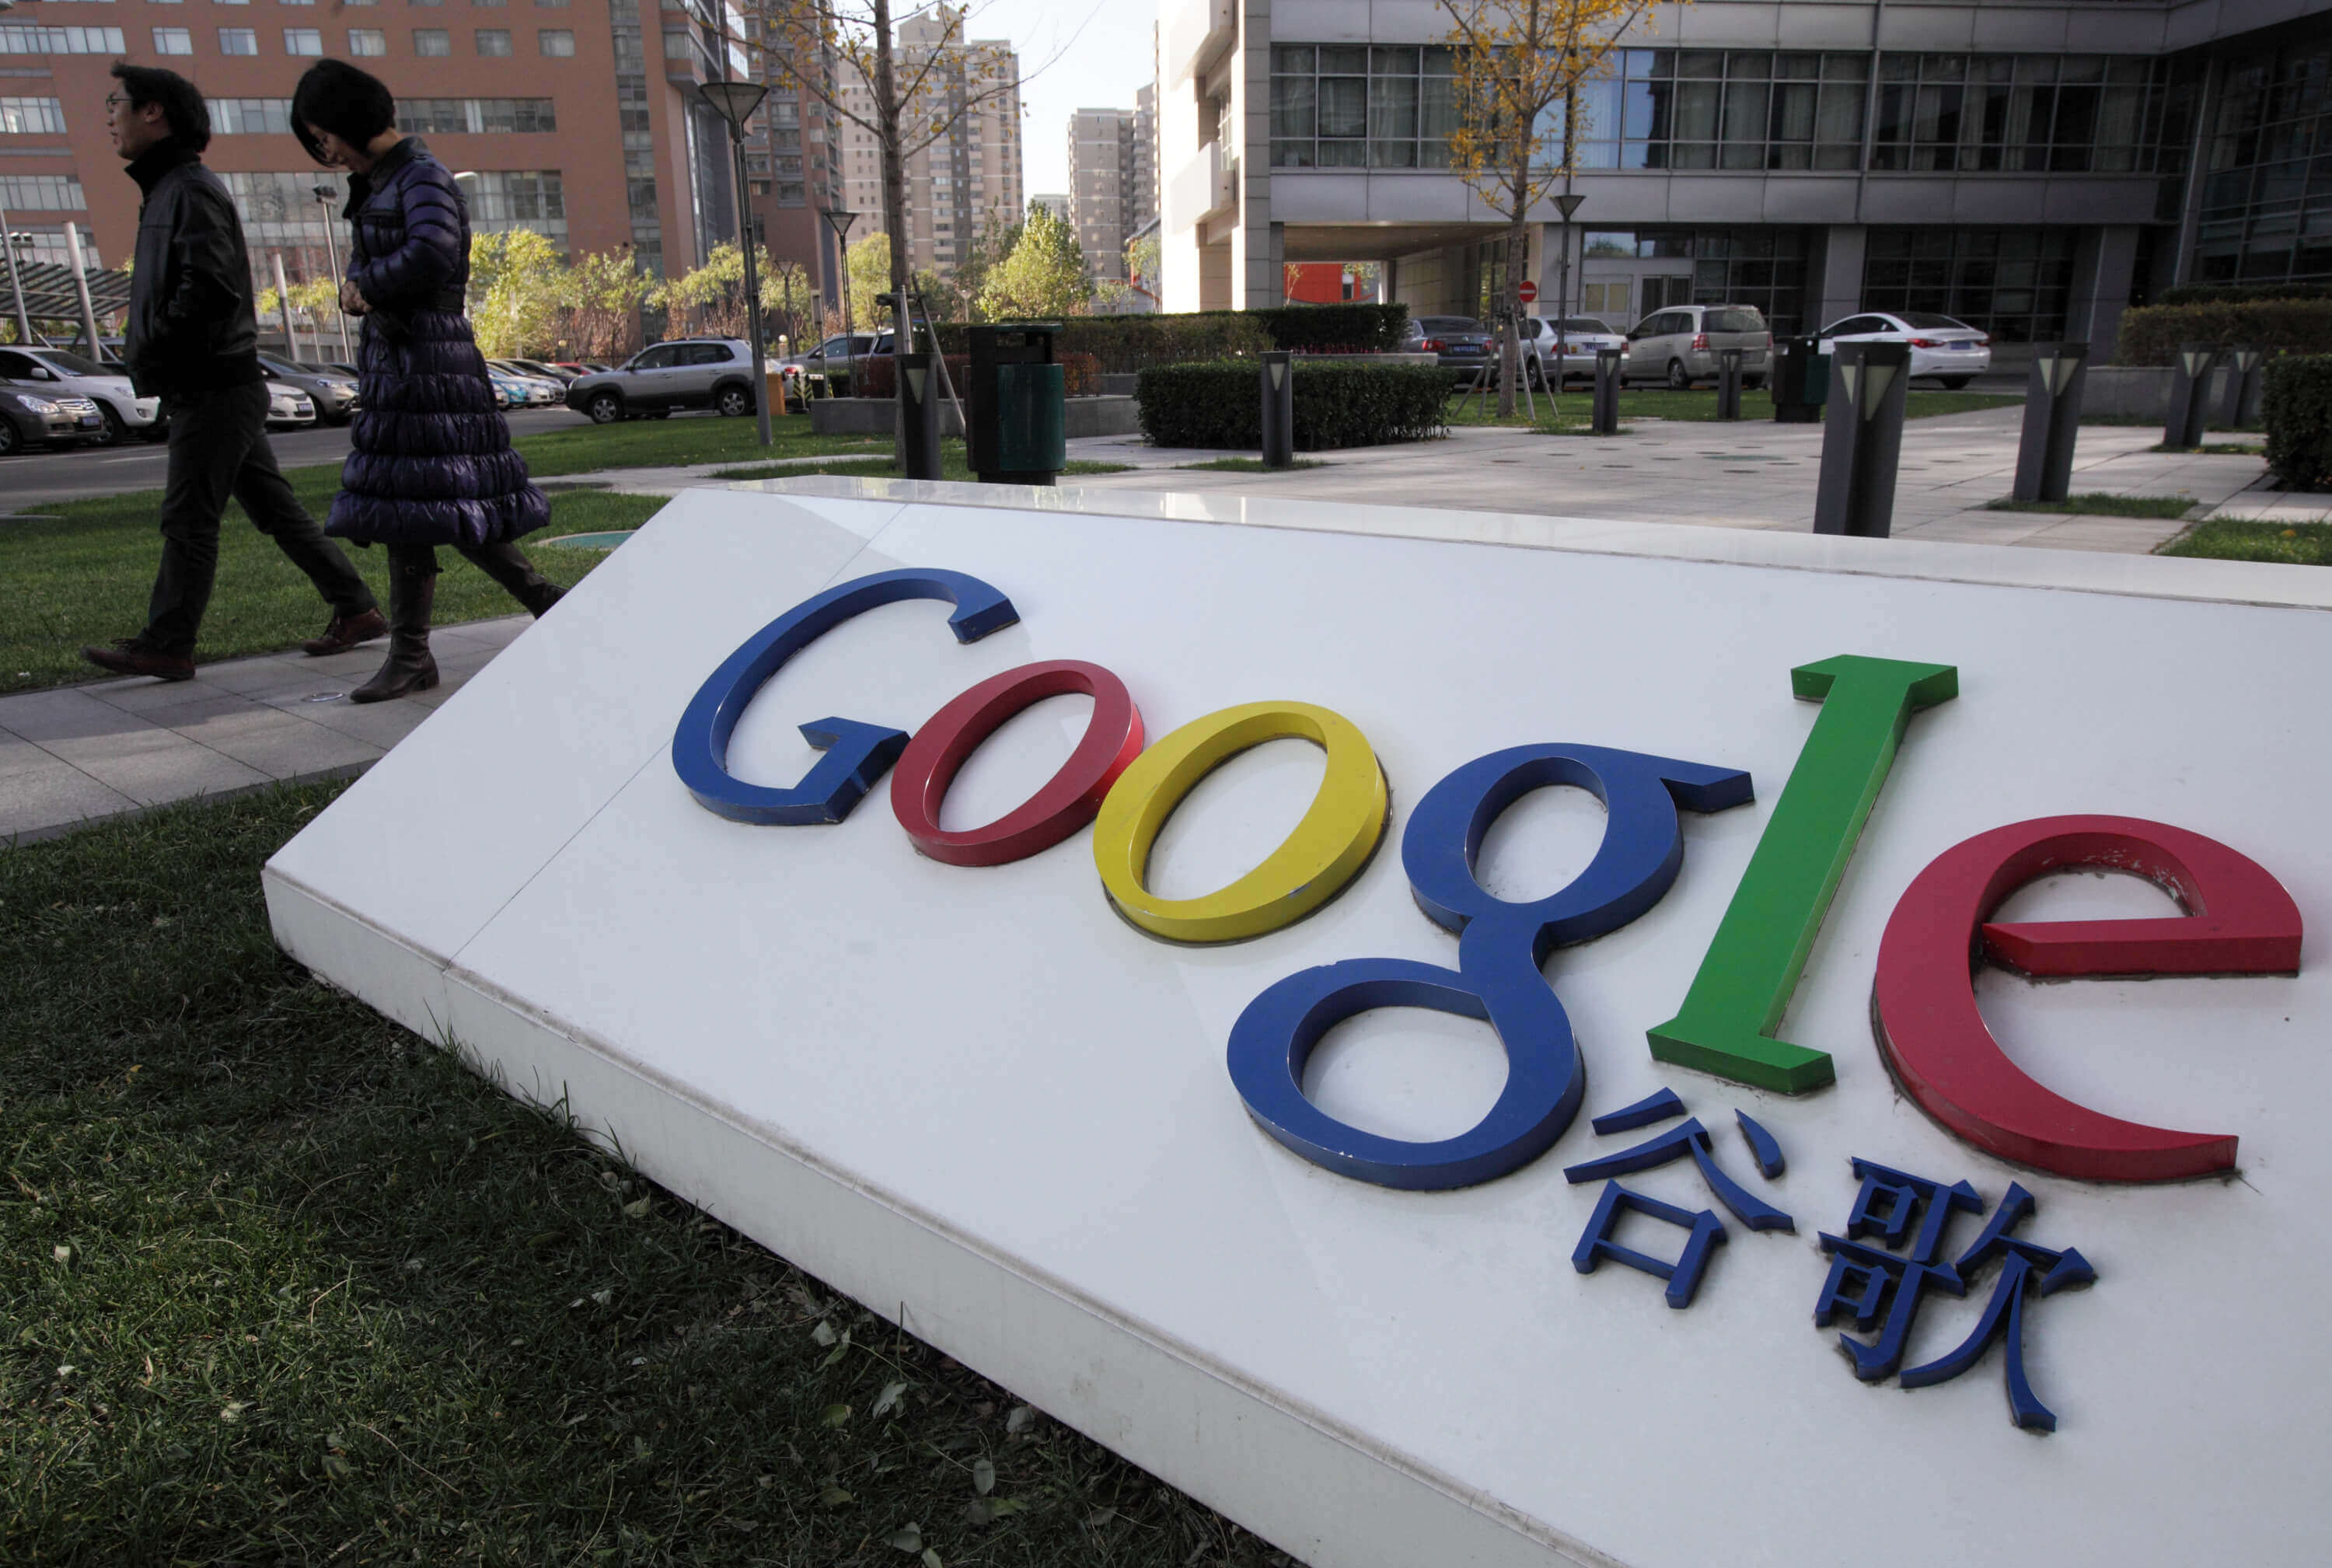 Google reportedly developing censored version of its search engine for China